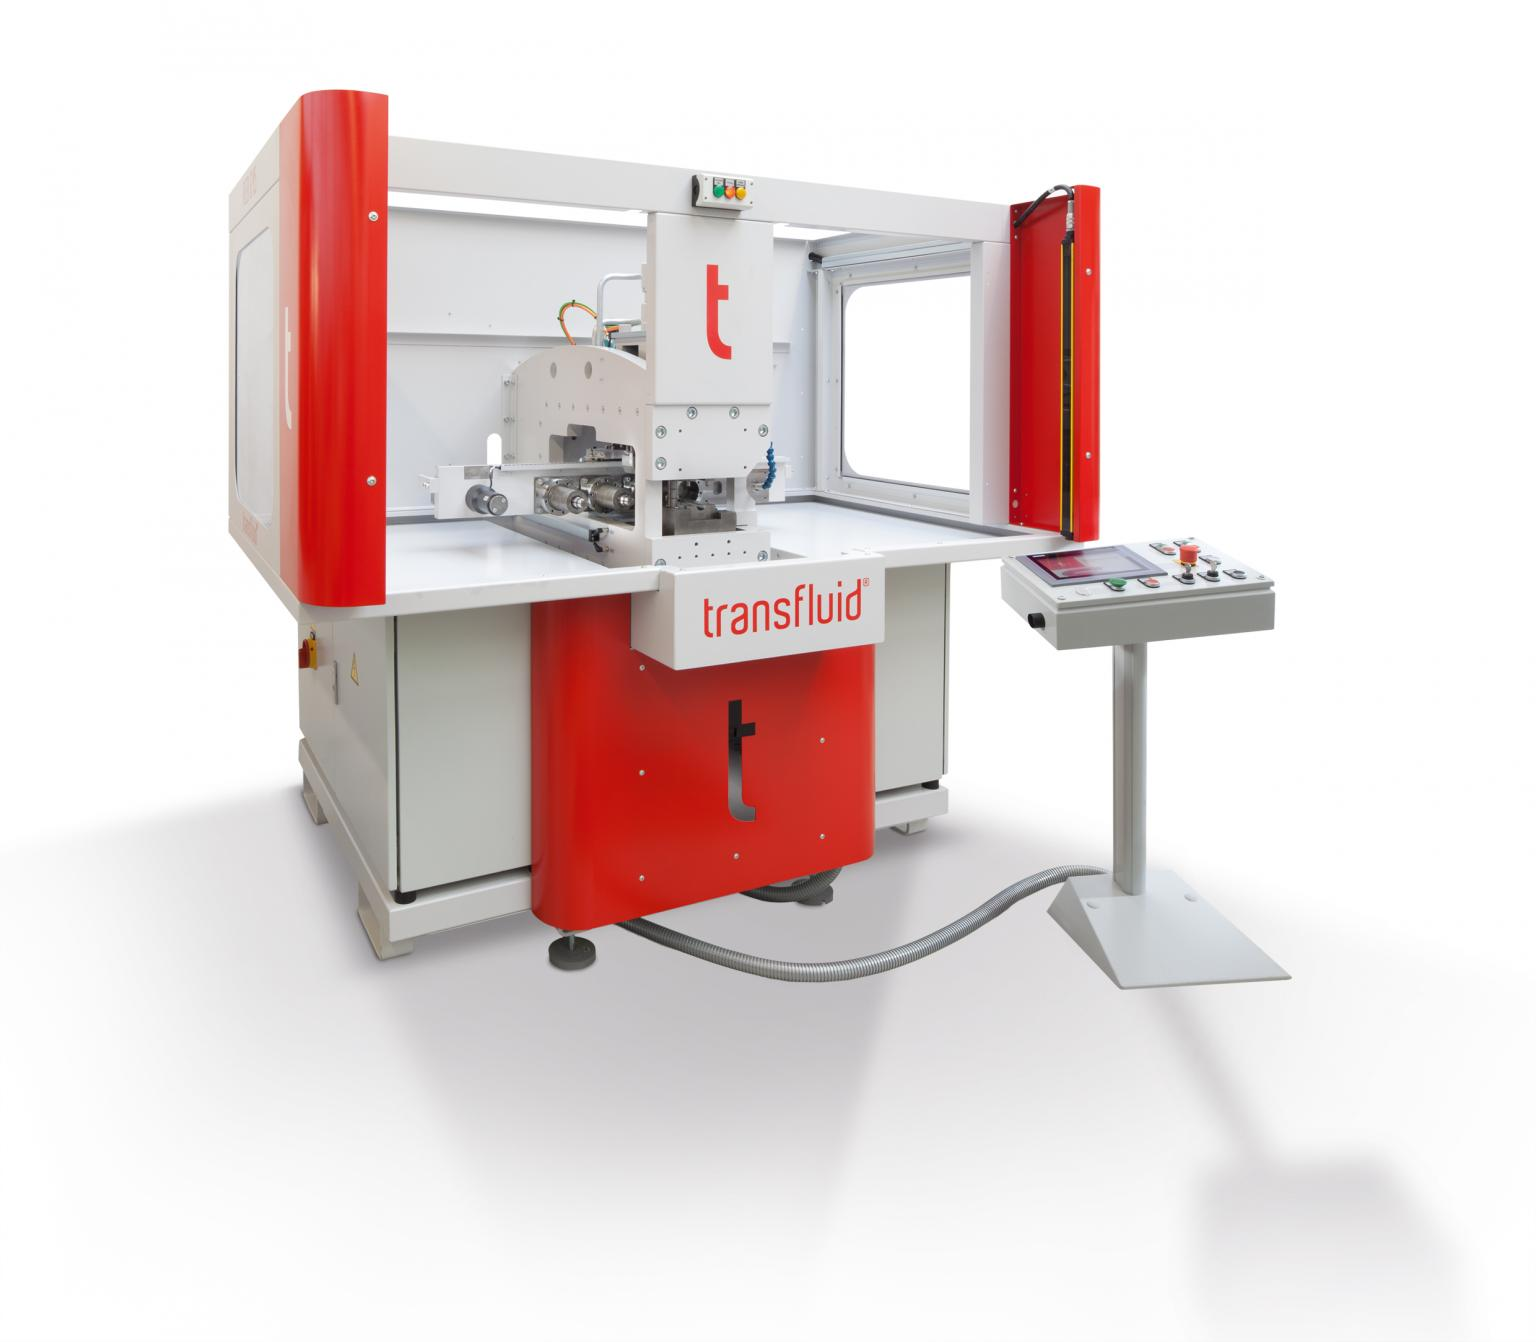 The new tube forming machine REB 645 with automatic tool detection. © transfluid